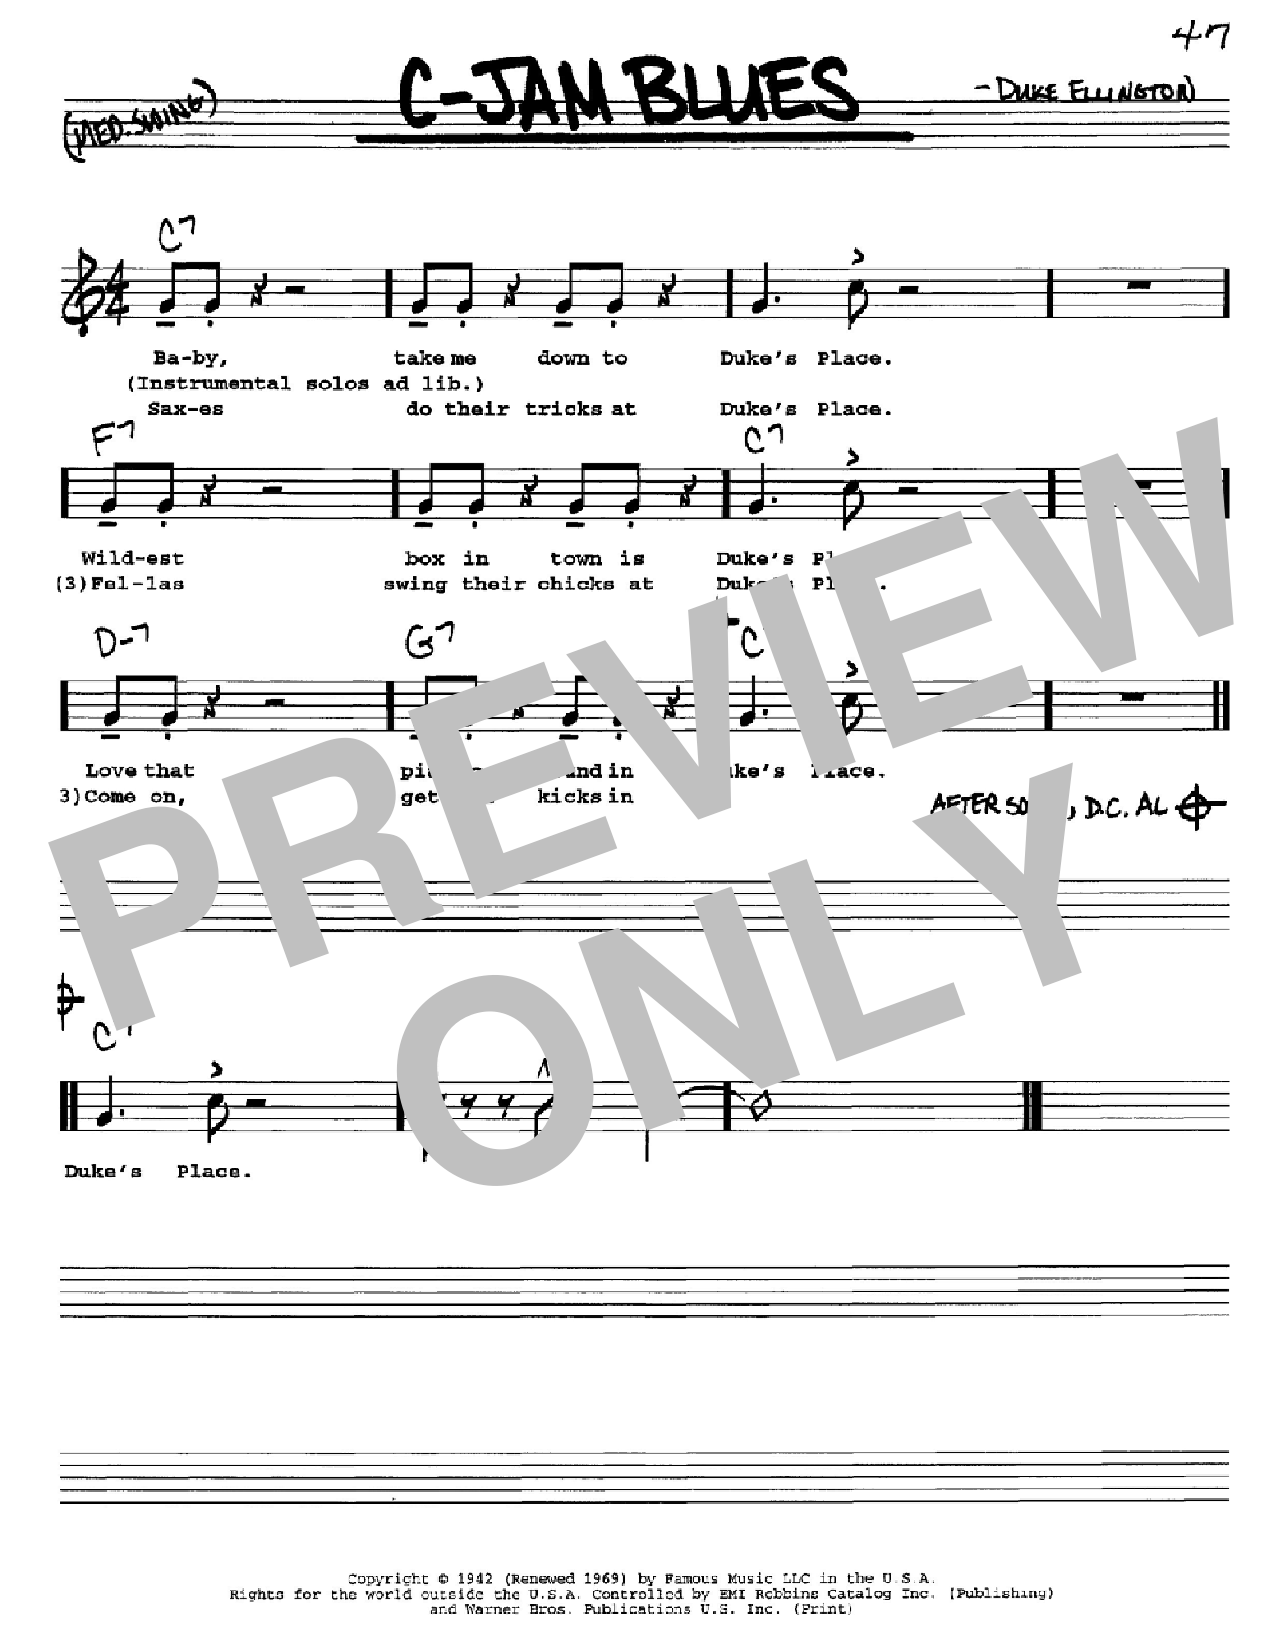 C-Jam Blues Sheet Music